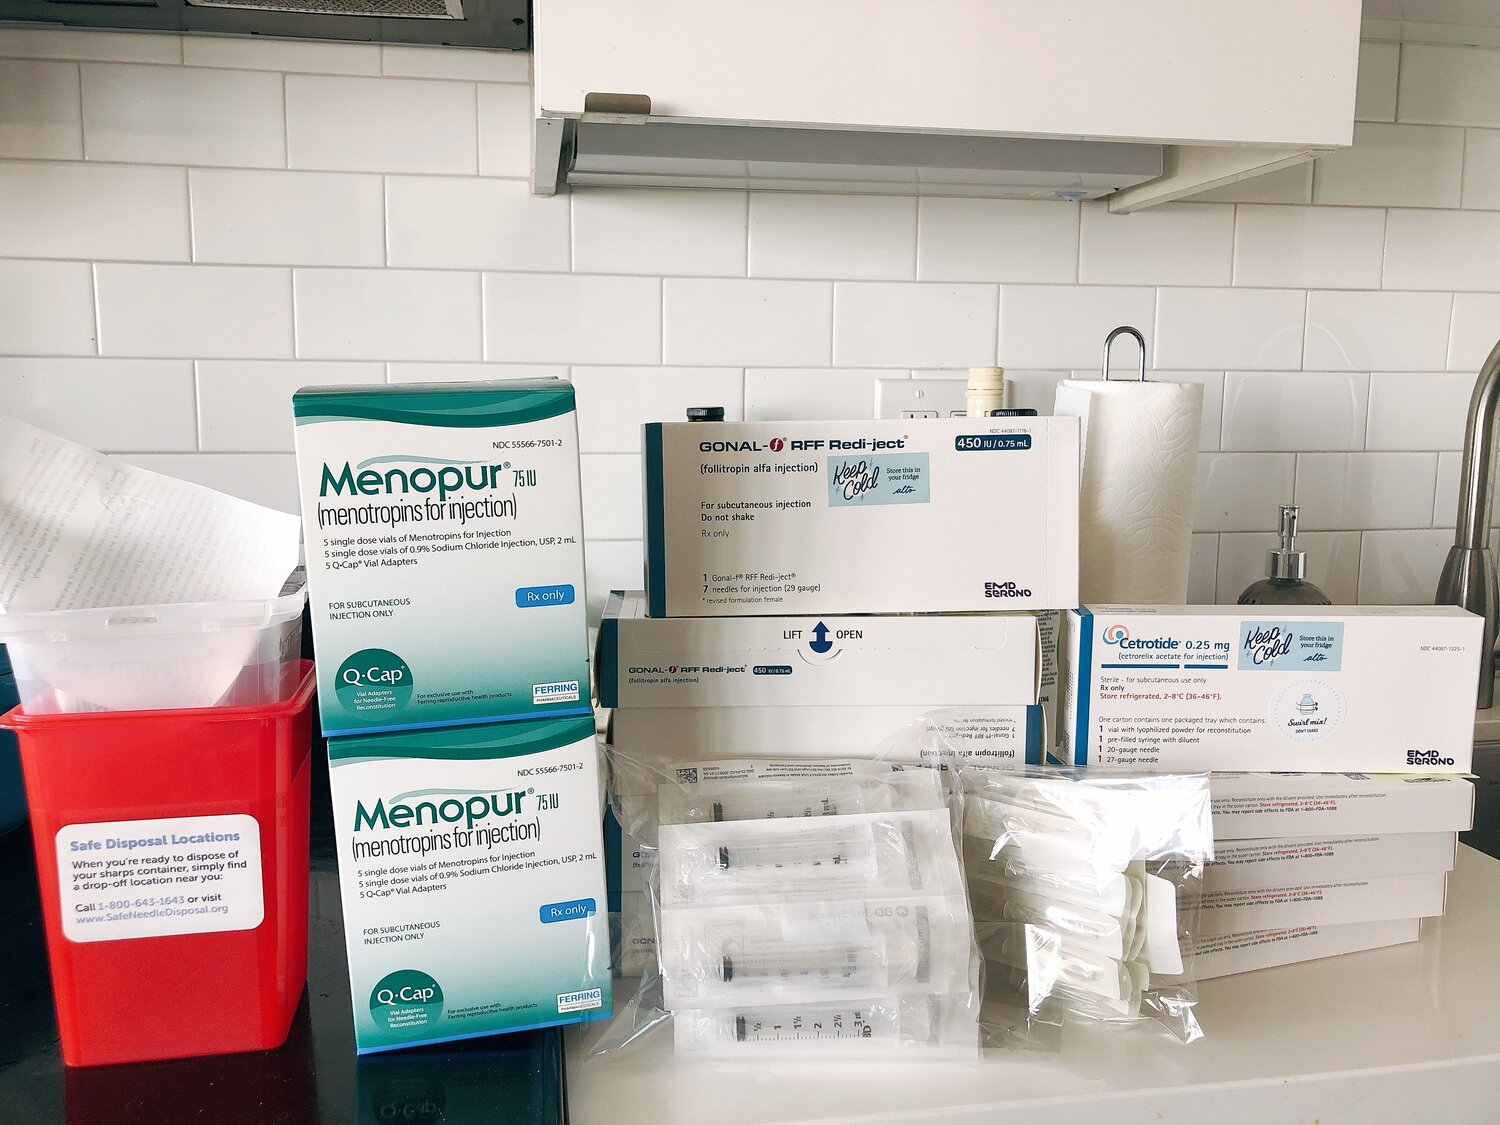 All of my medication, syringes and all!